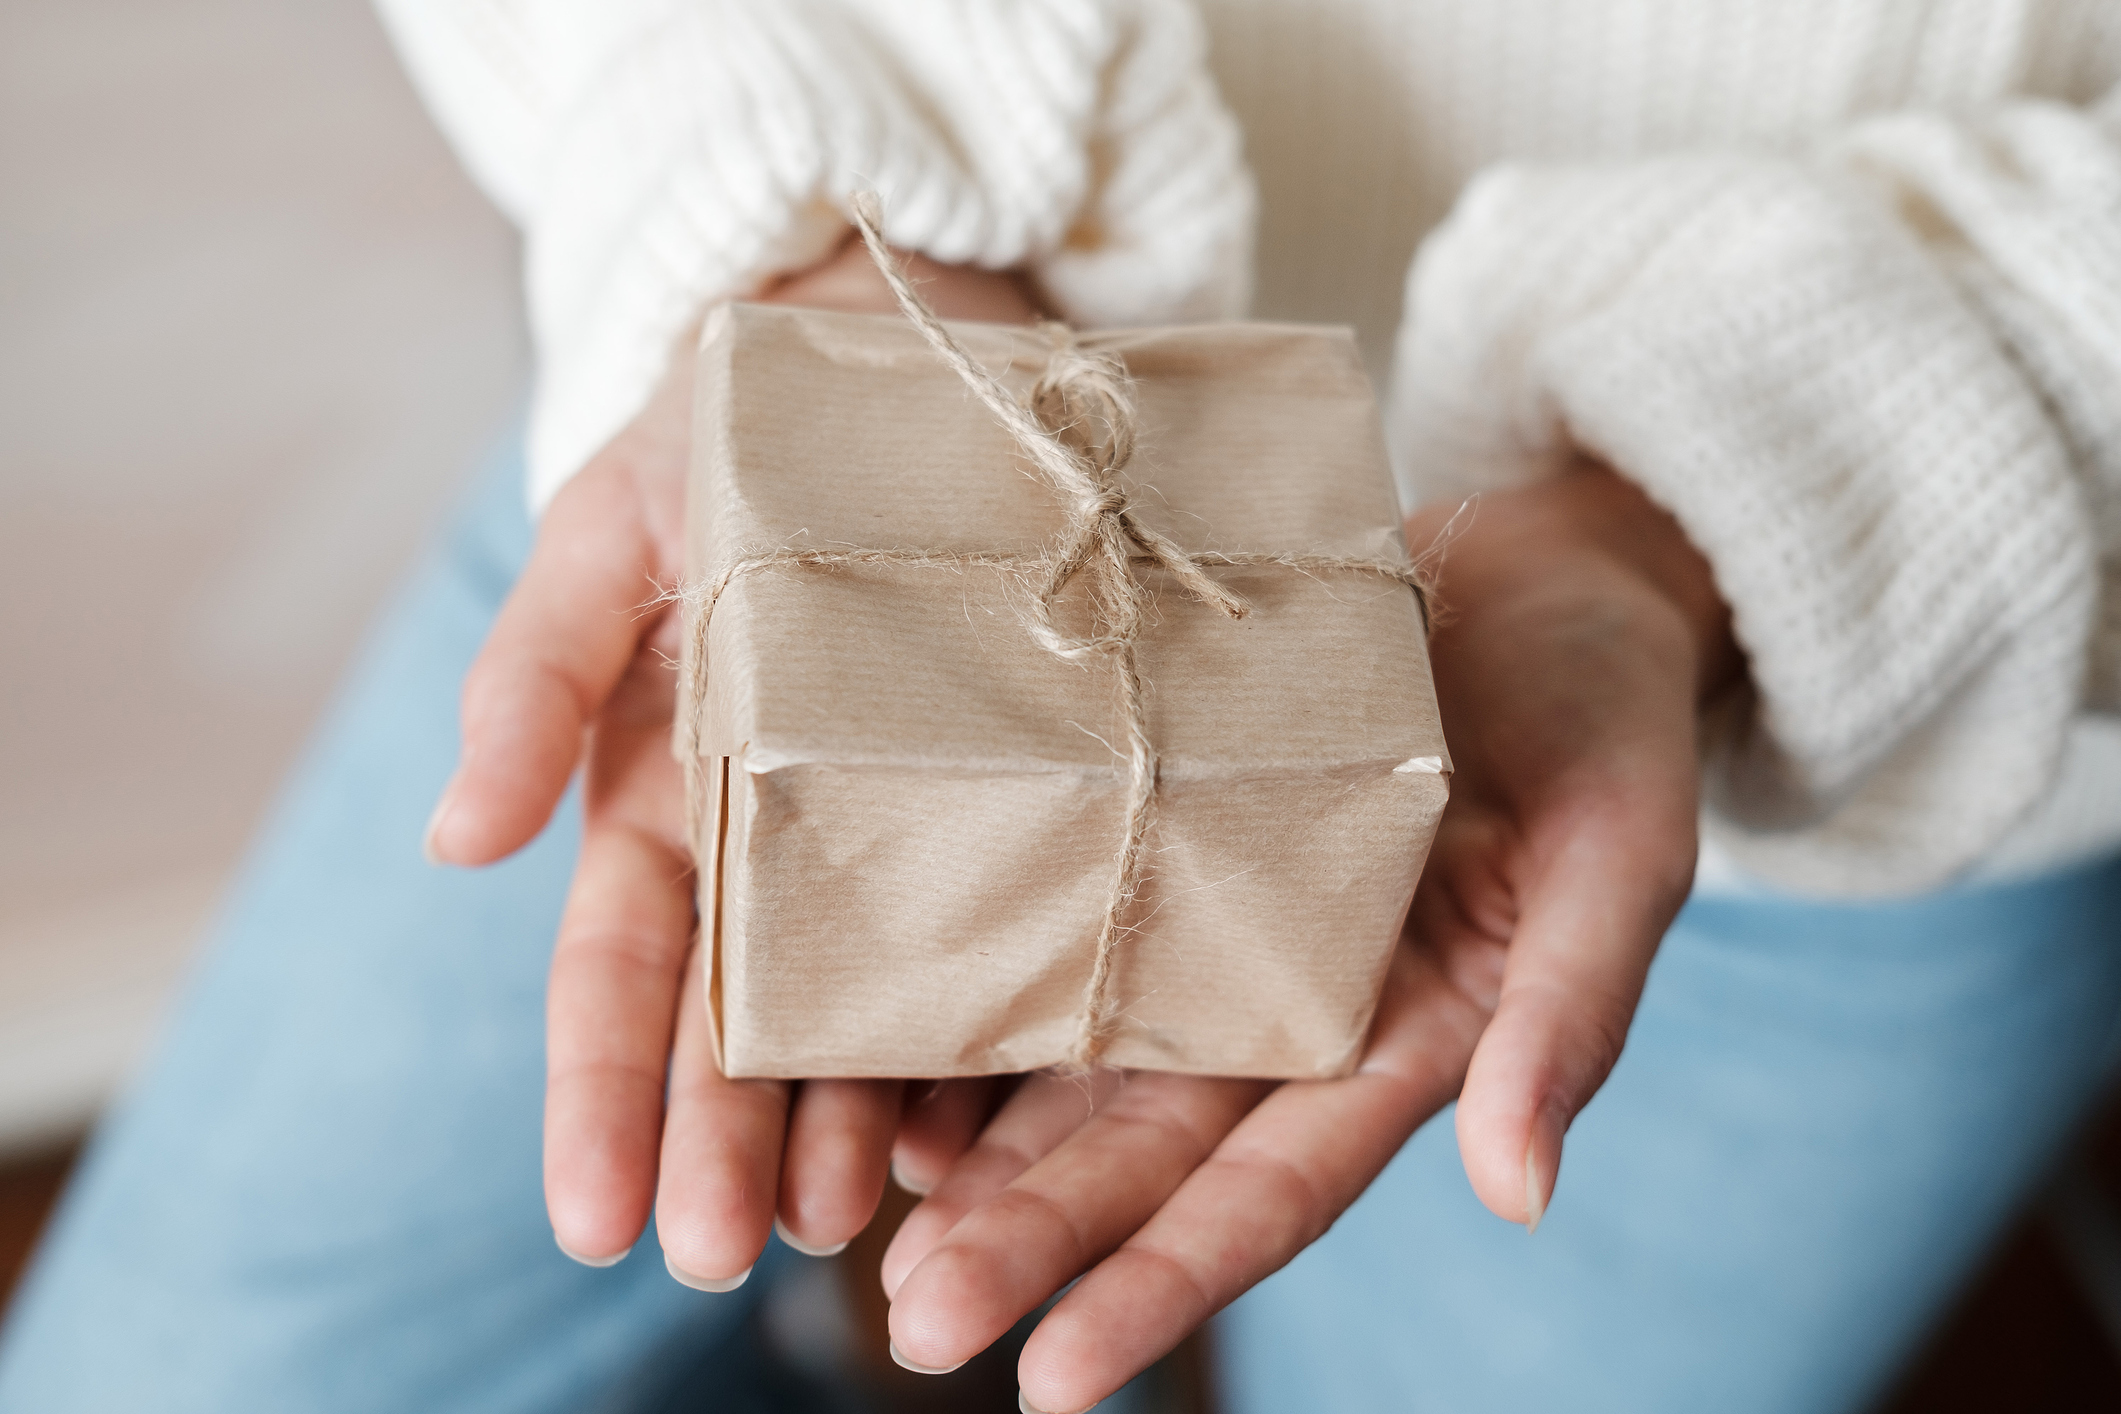 Hands offering out a gift wrapped in brown paper and twine.